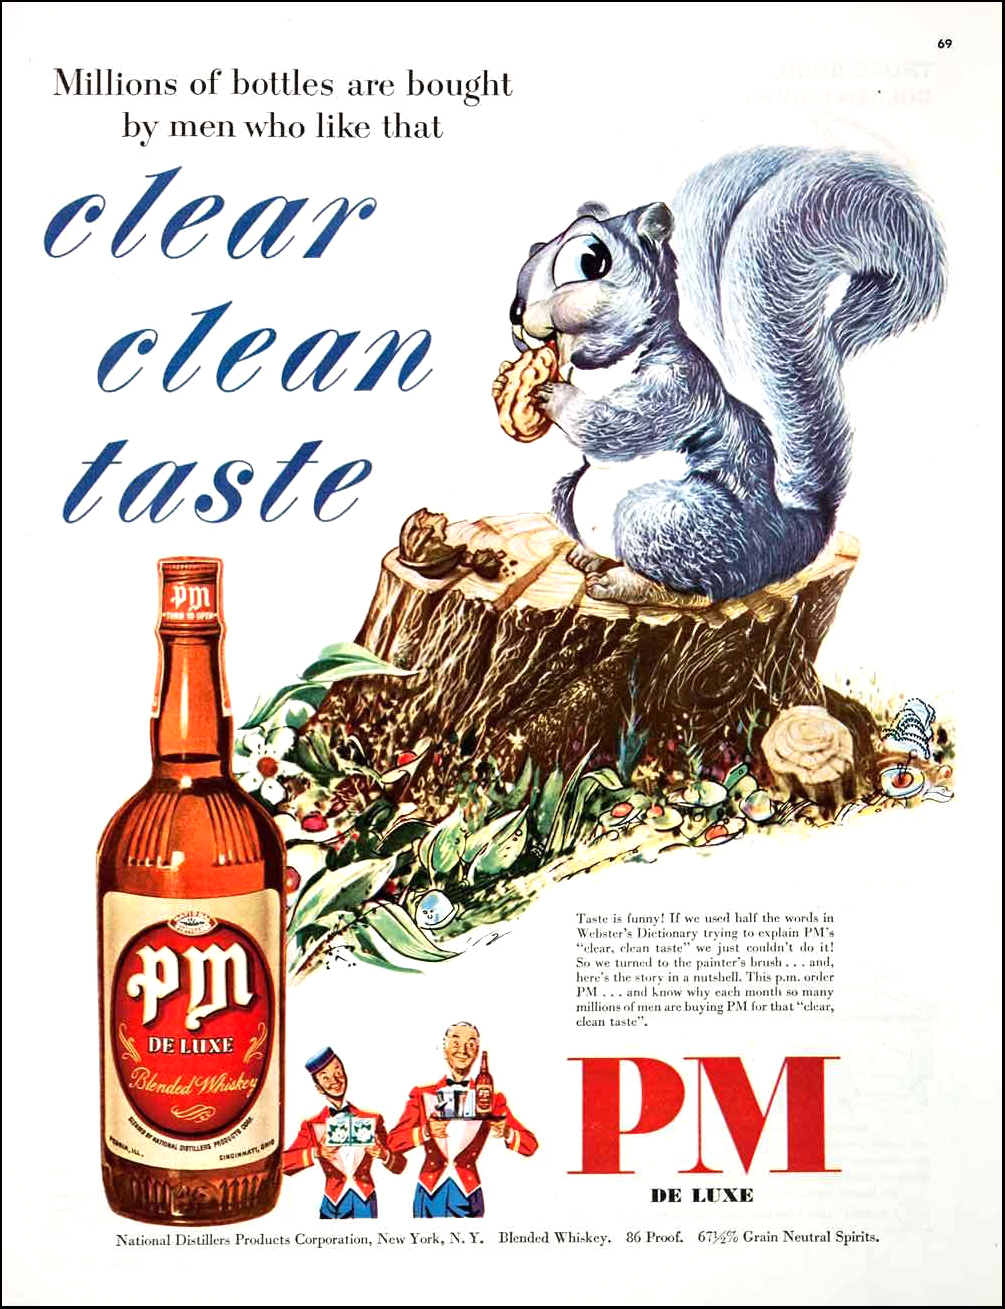 PM De Luxe Blended Whiskey - 1949